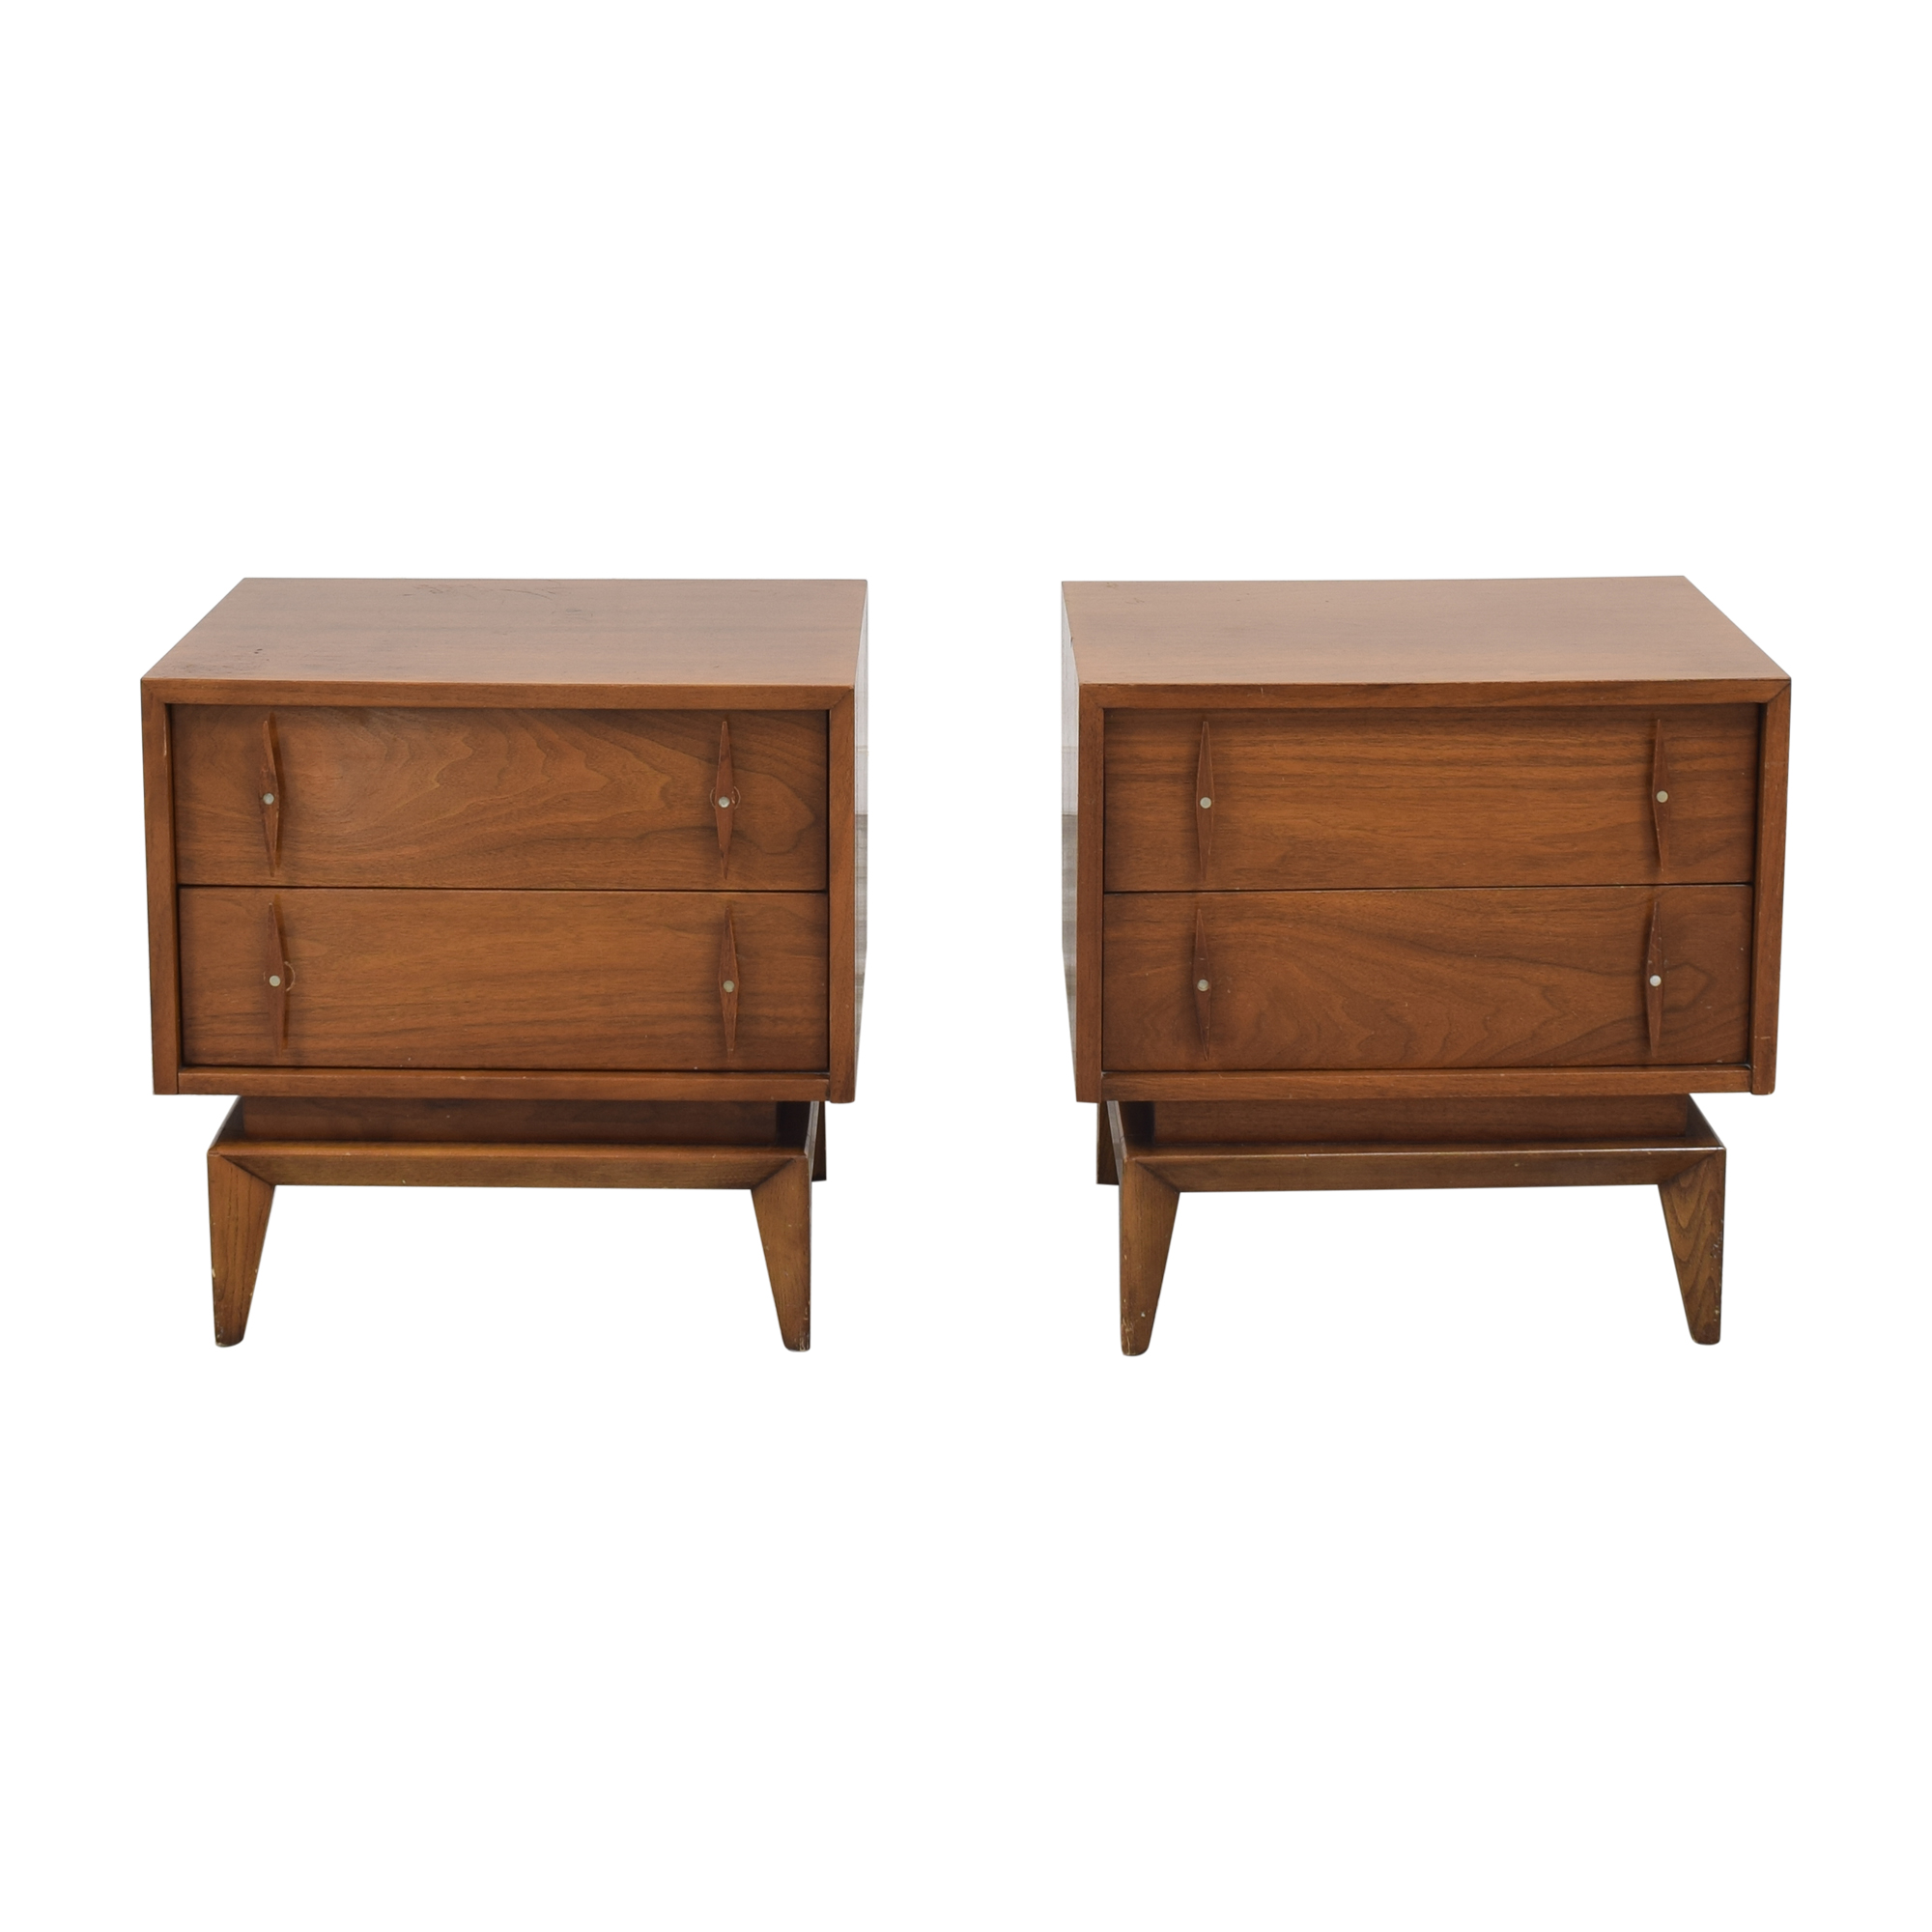 shop American of Martinsville Mid-Century Modern End Tables American of Martinsville